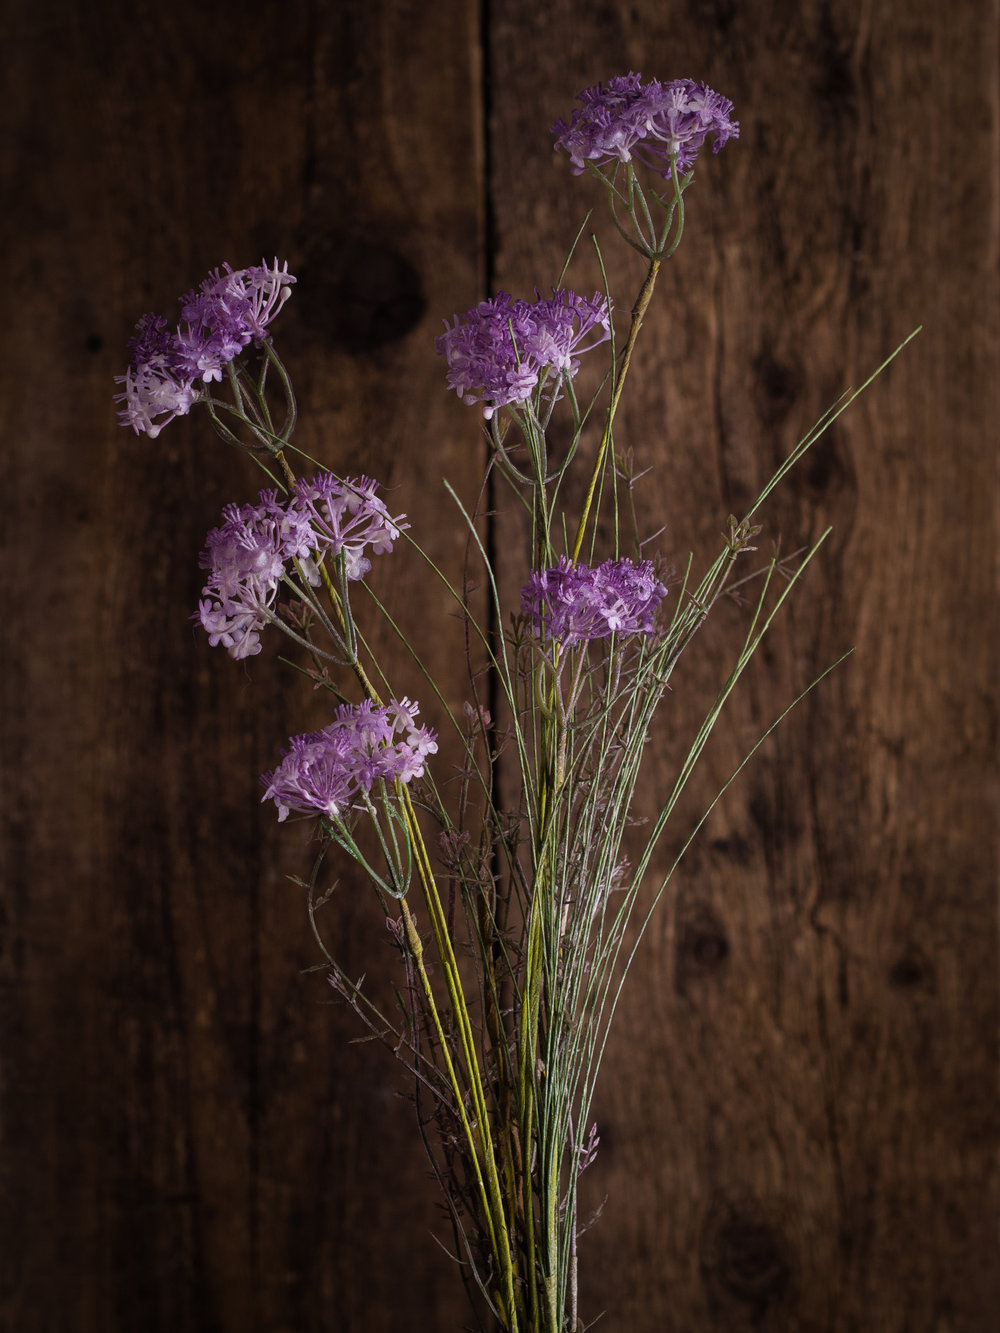 BE A SOFT TOUCH Opt for the delicate look of foraged meadow flowers to bring the outdoors in. Shady Meadow Flower, single stem, £6.75 www.wyldhome.com